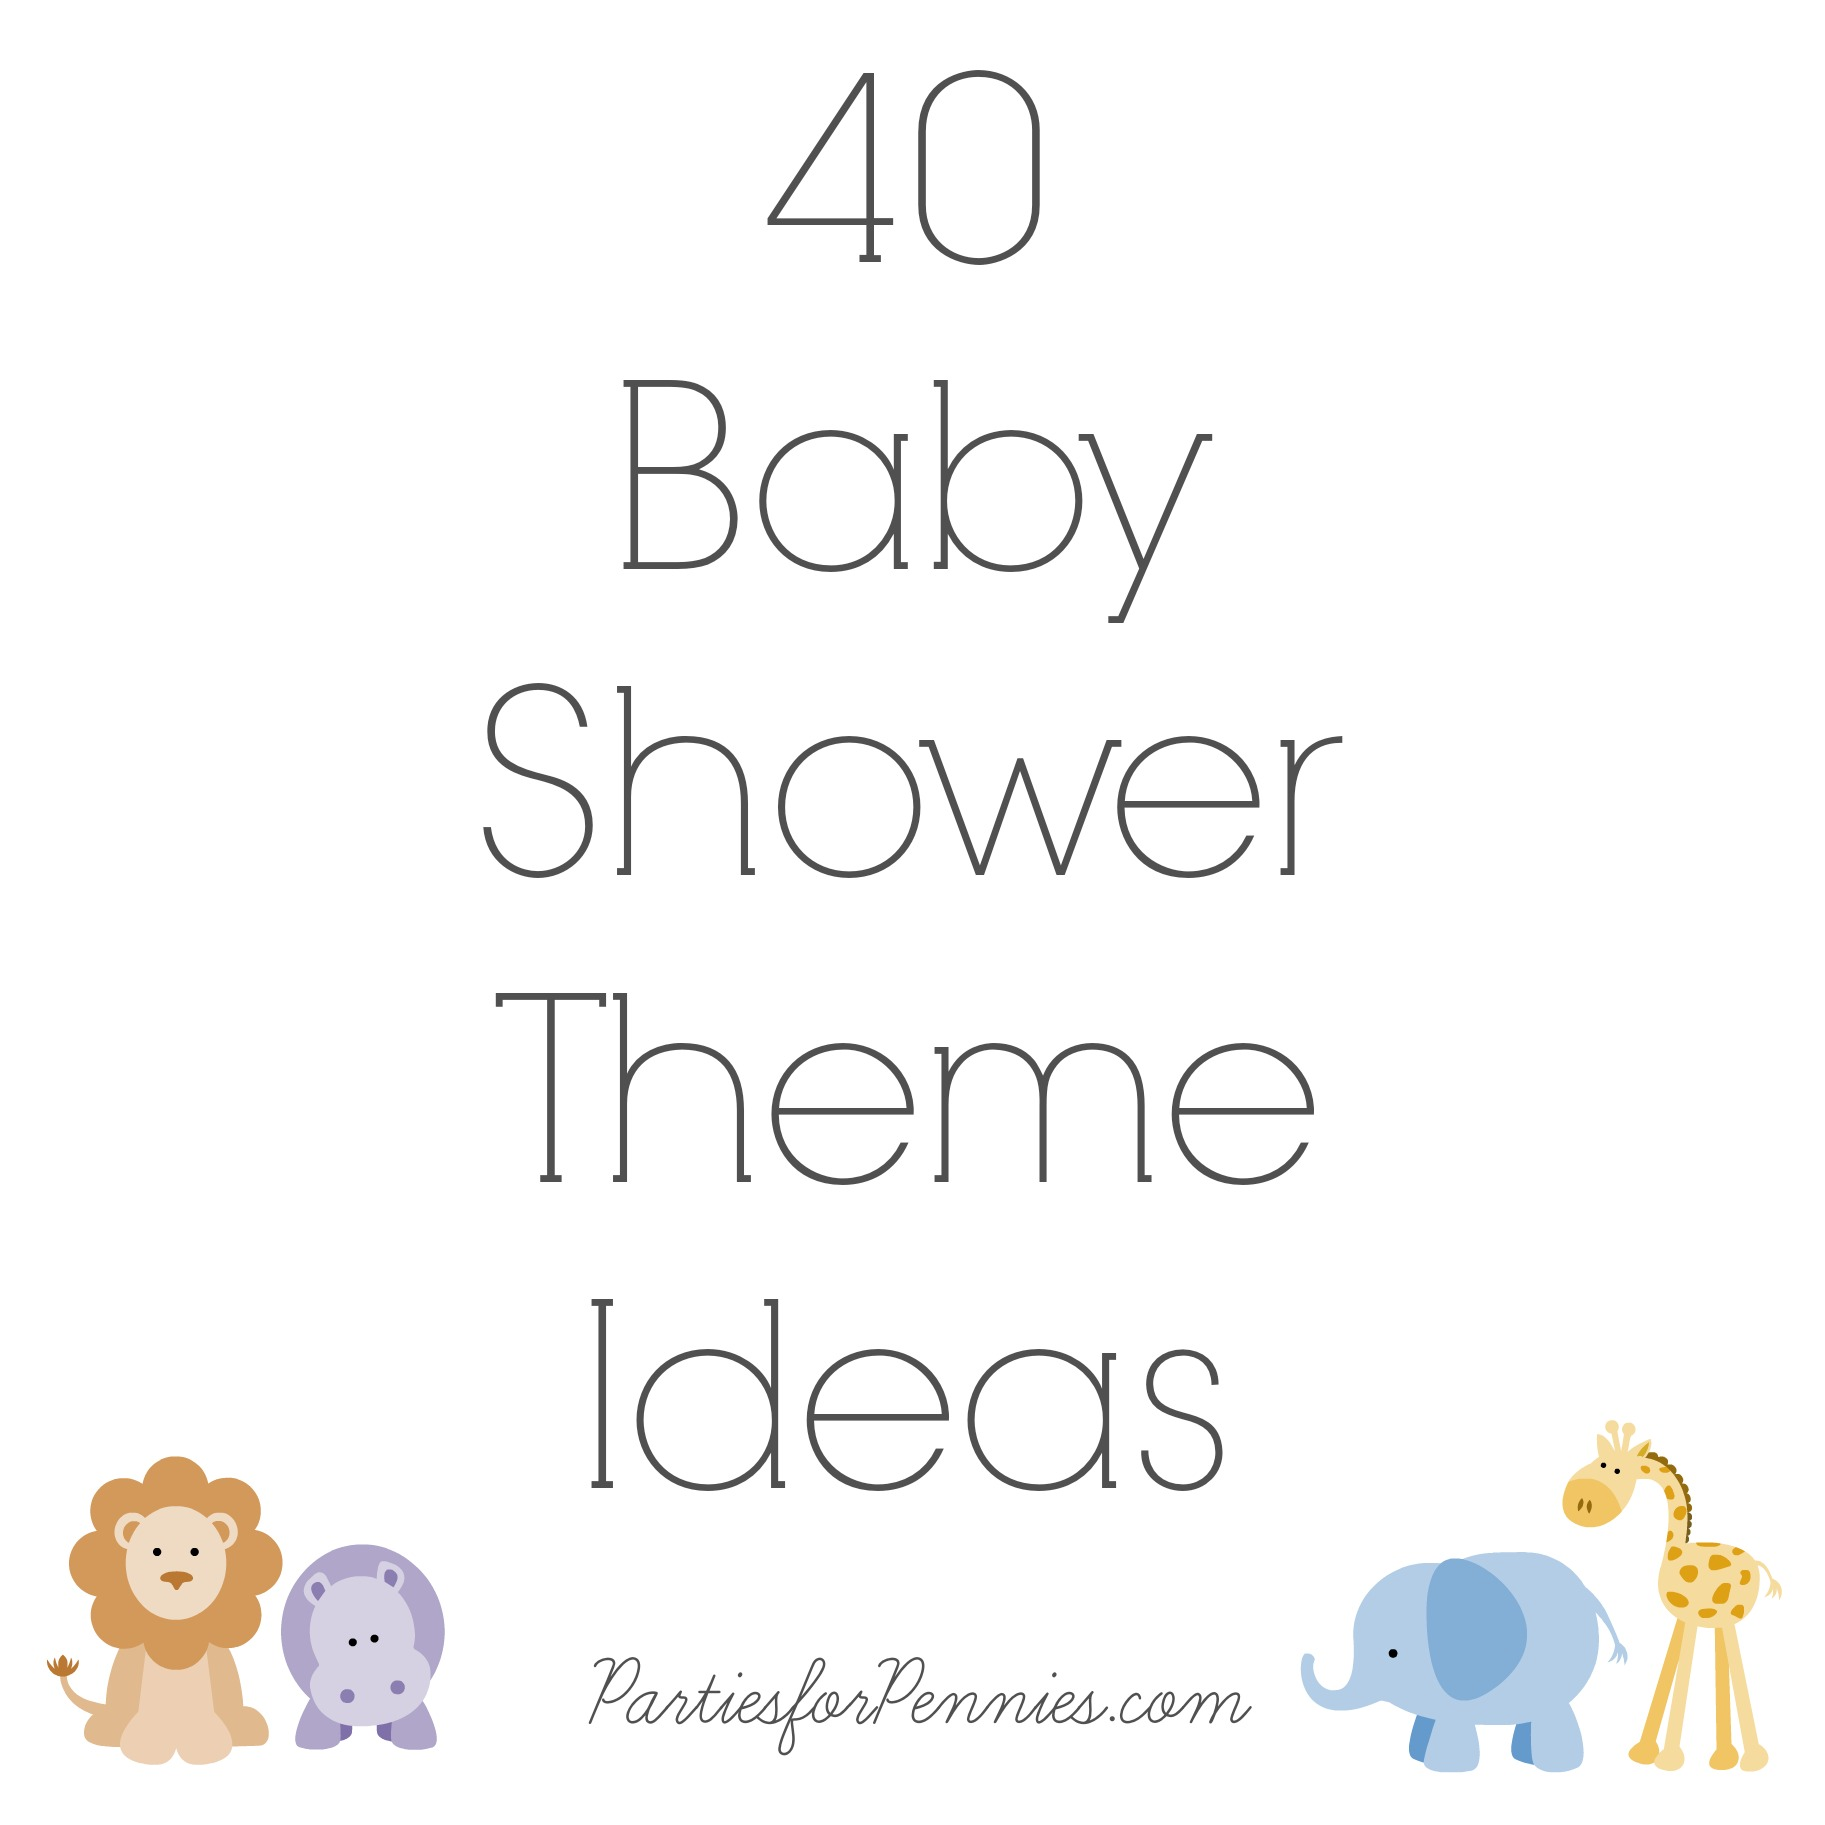 50 Ideas for Planning a Baby Shower | PartiesforPennies.com | 40 Baby Shower Themes